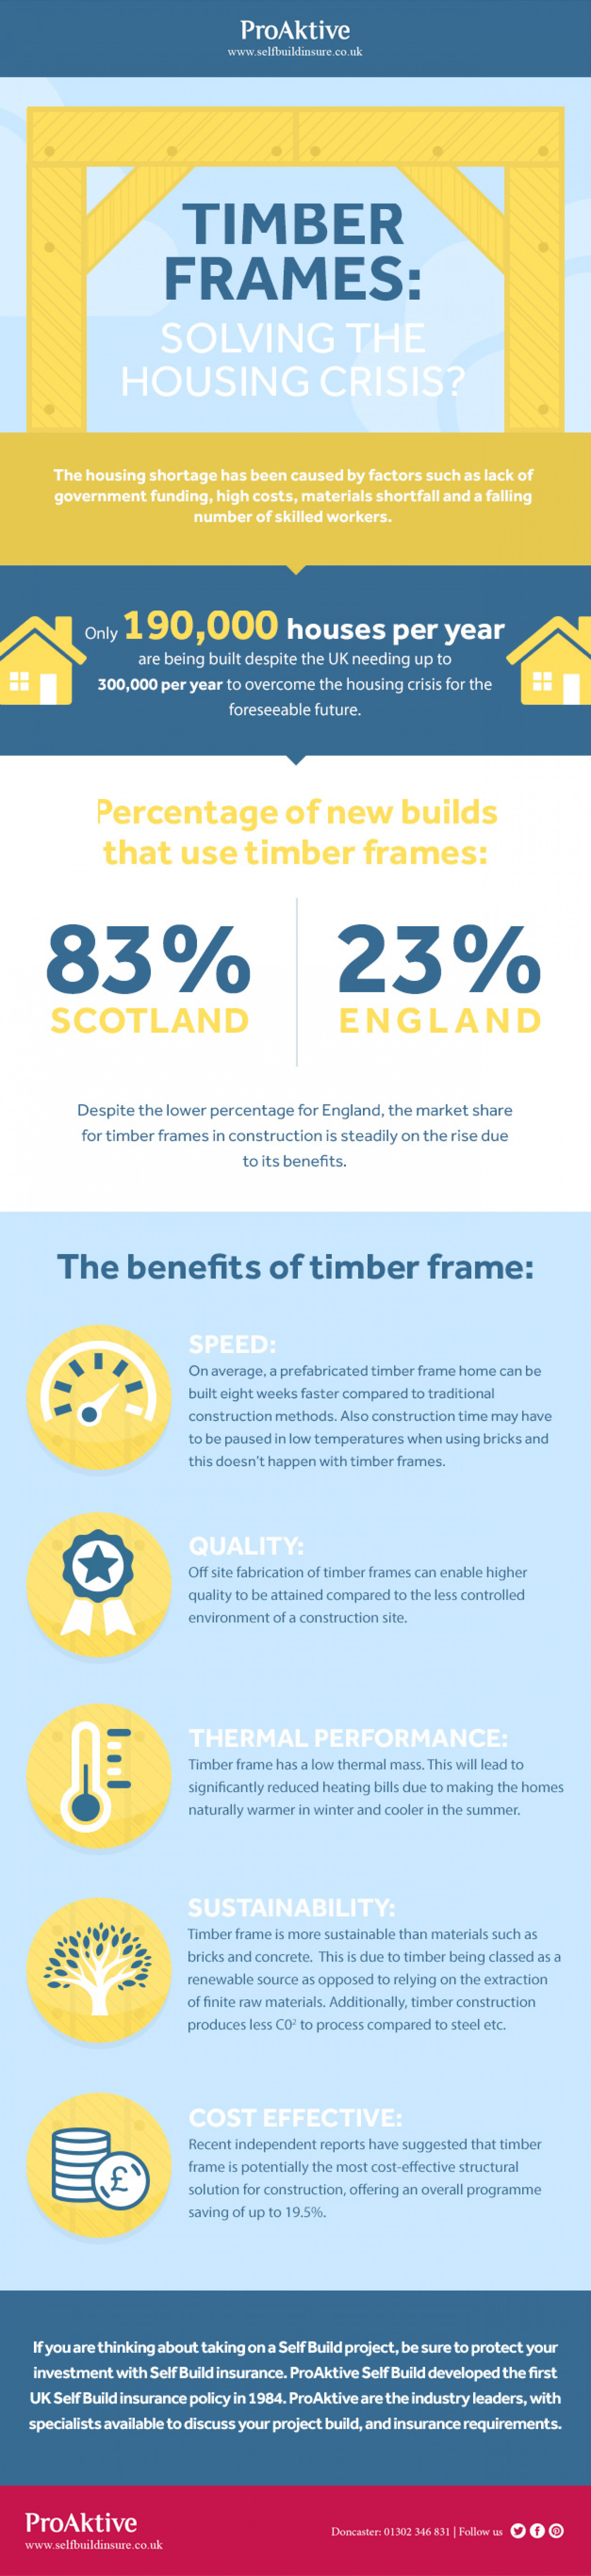 Timber Frames: Solving the Housing Crisis? Infographic